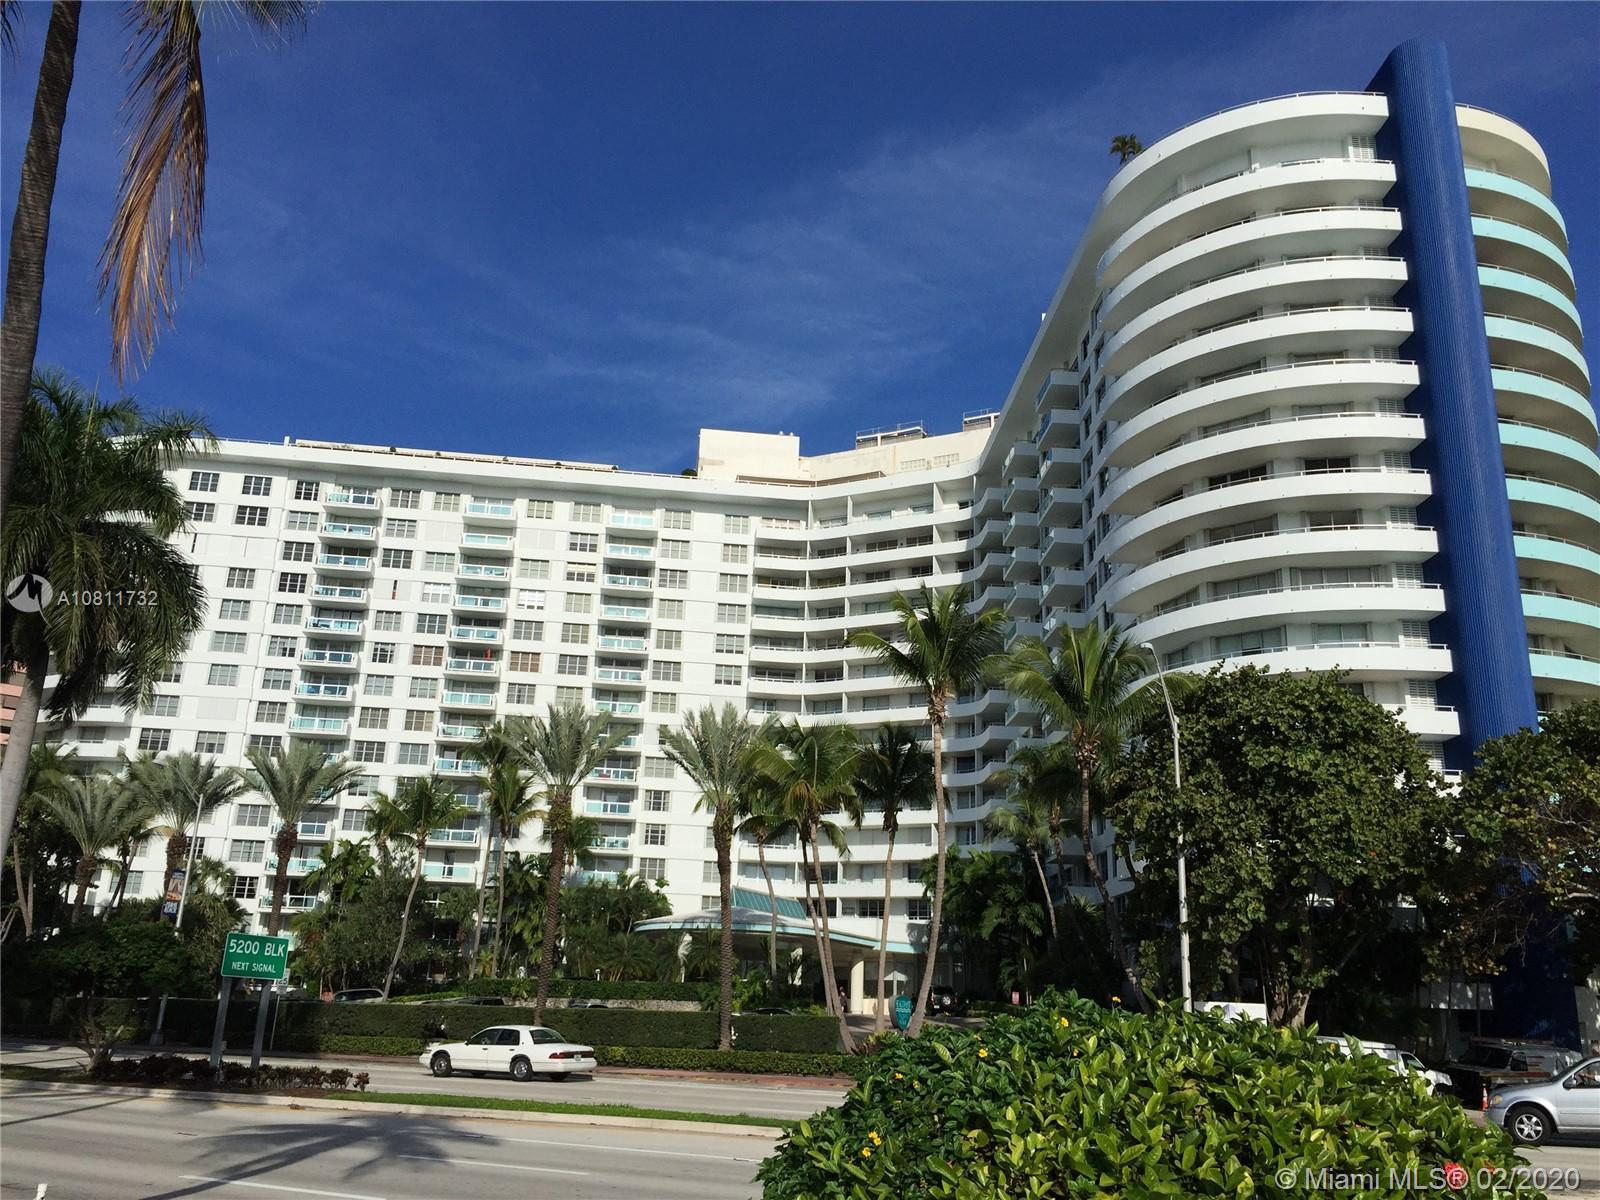 5161 Collins Ave #207 Property Photo